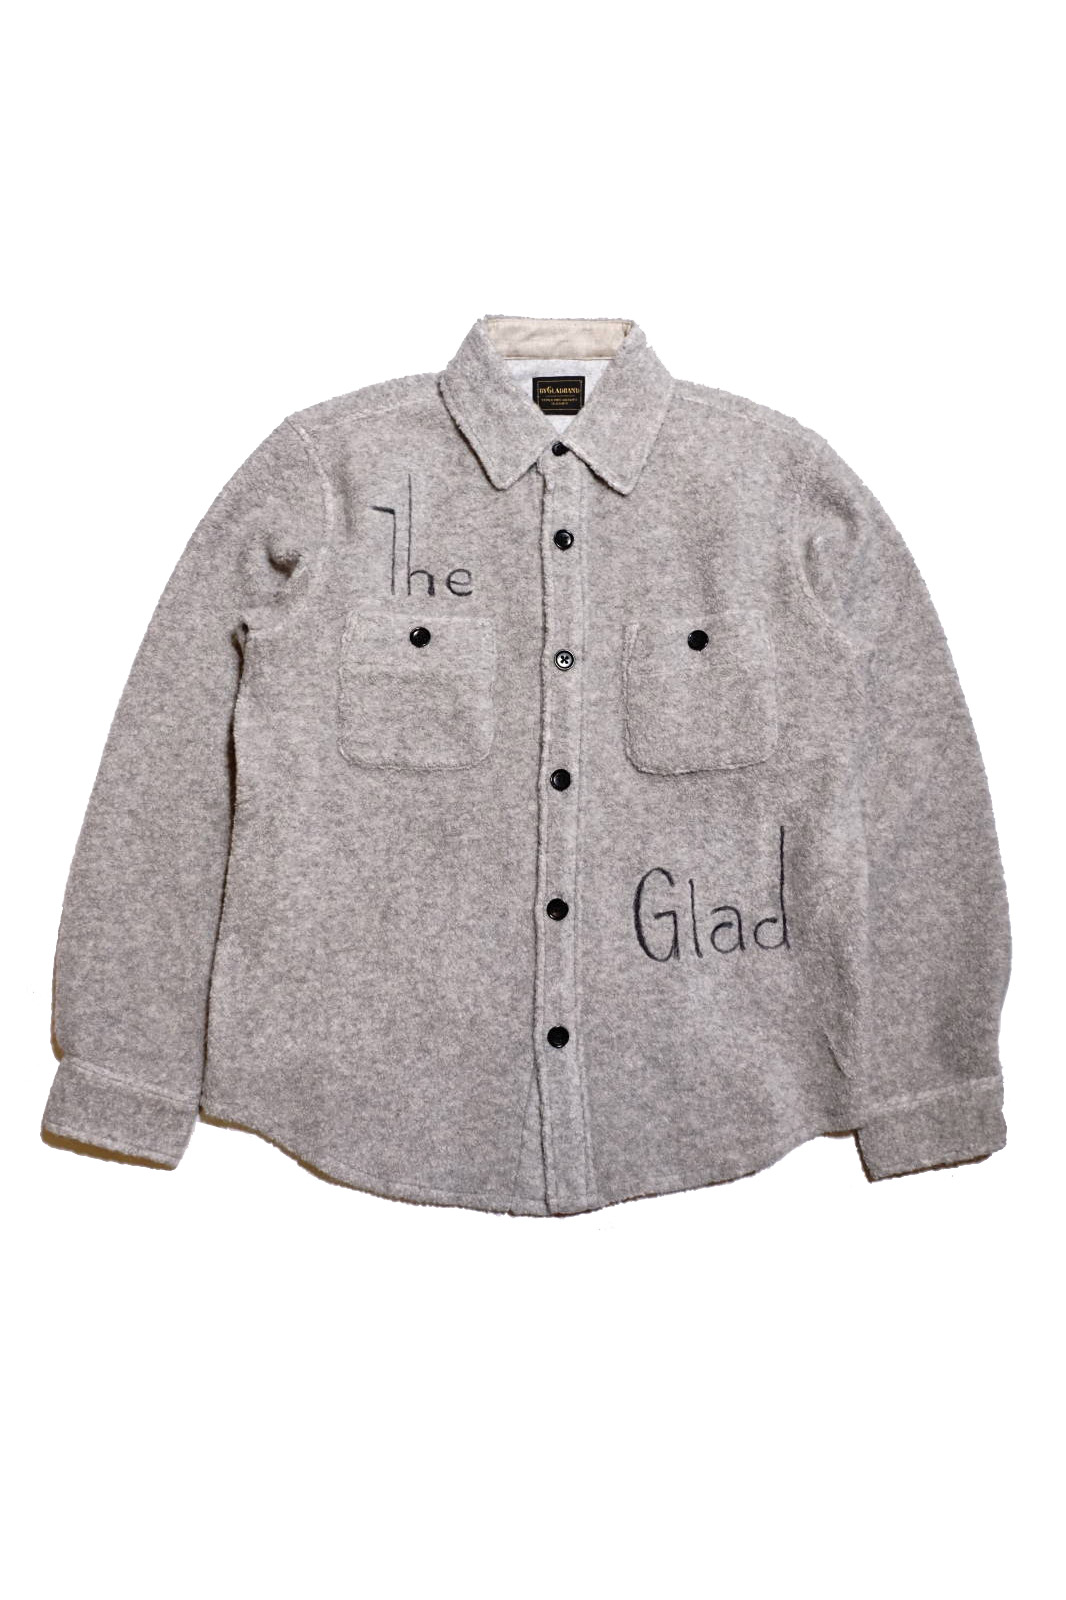 BY GLAD HAND THE GLAD - L/S BOA SHIRTS GRAY